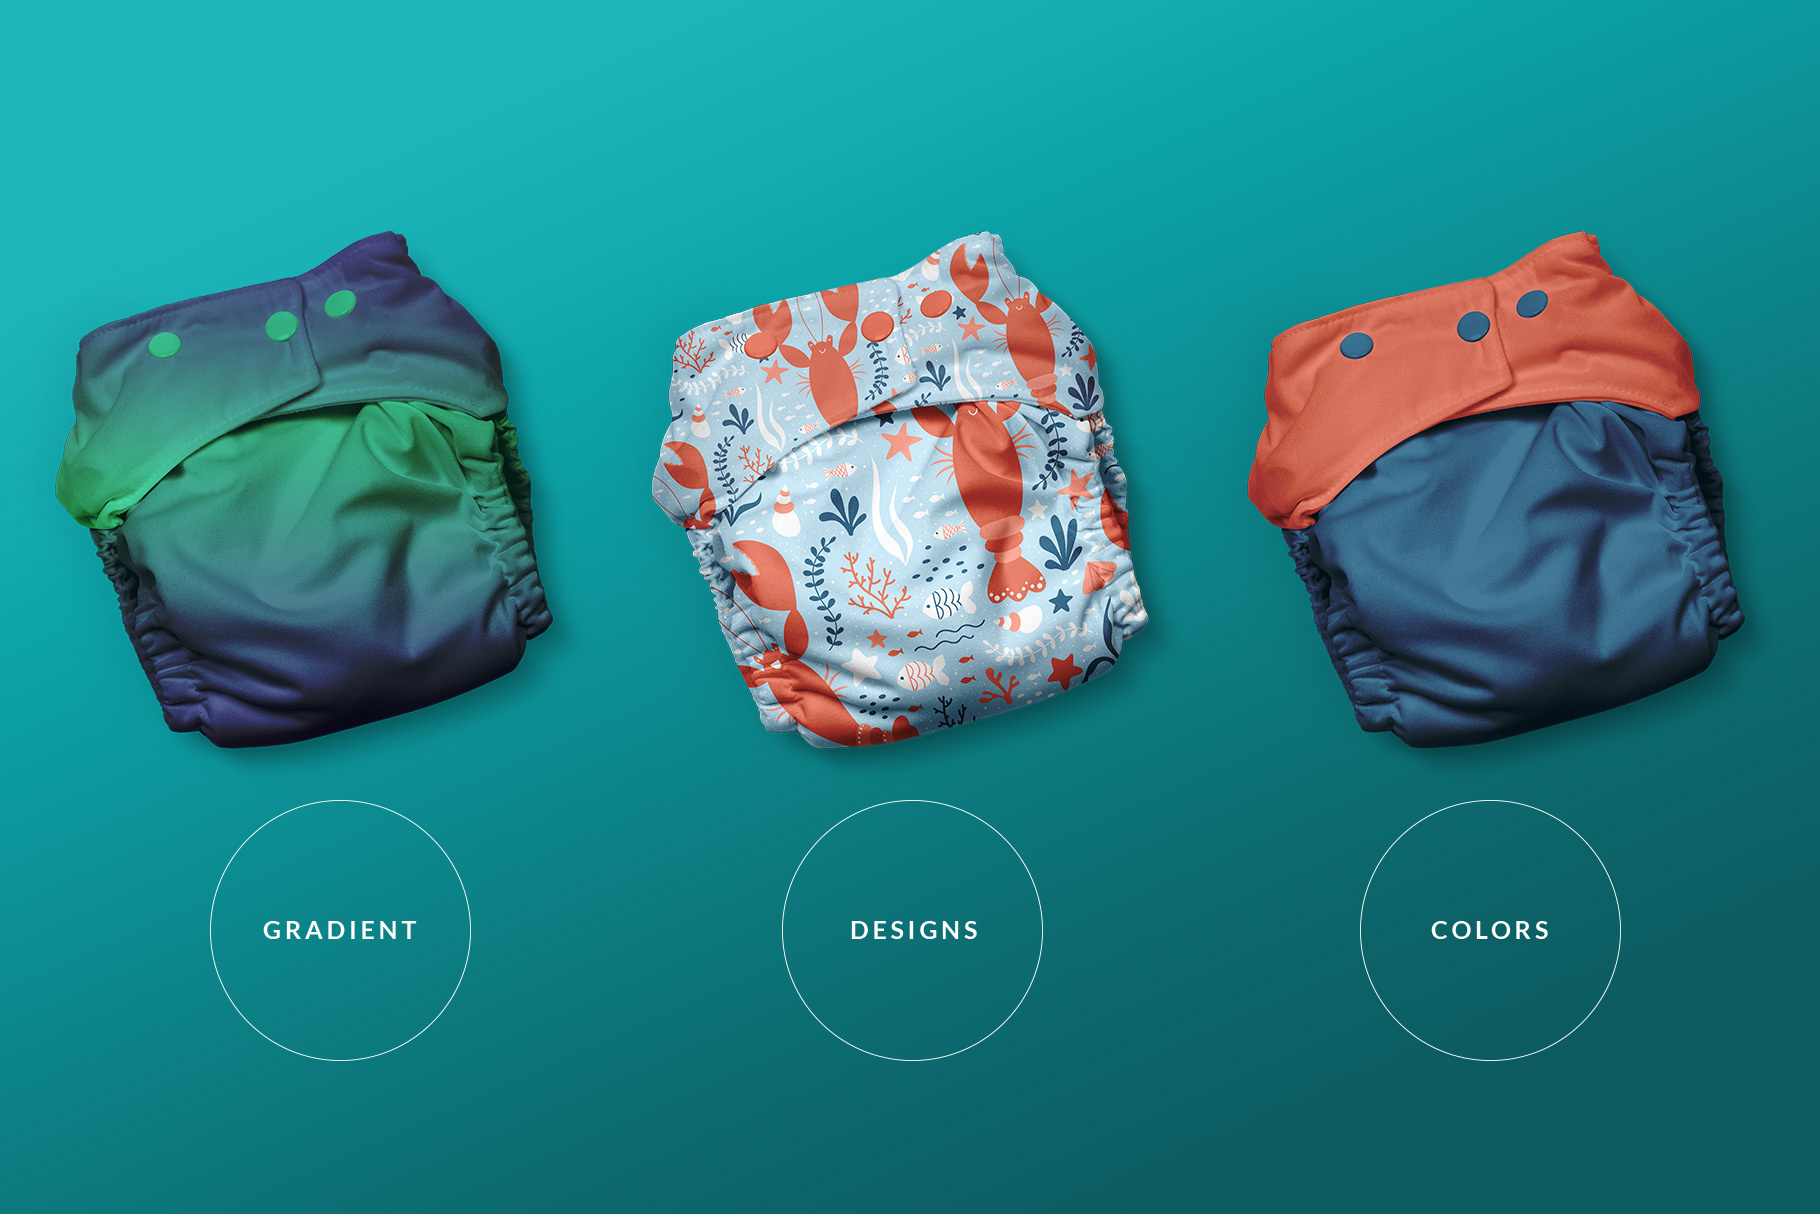 types of the reusable cloth diaper mockup